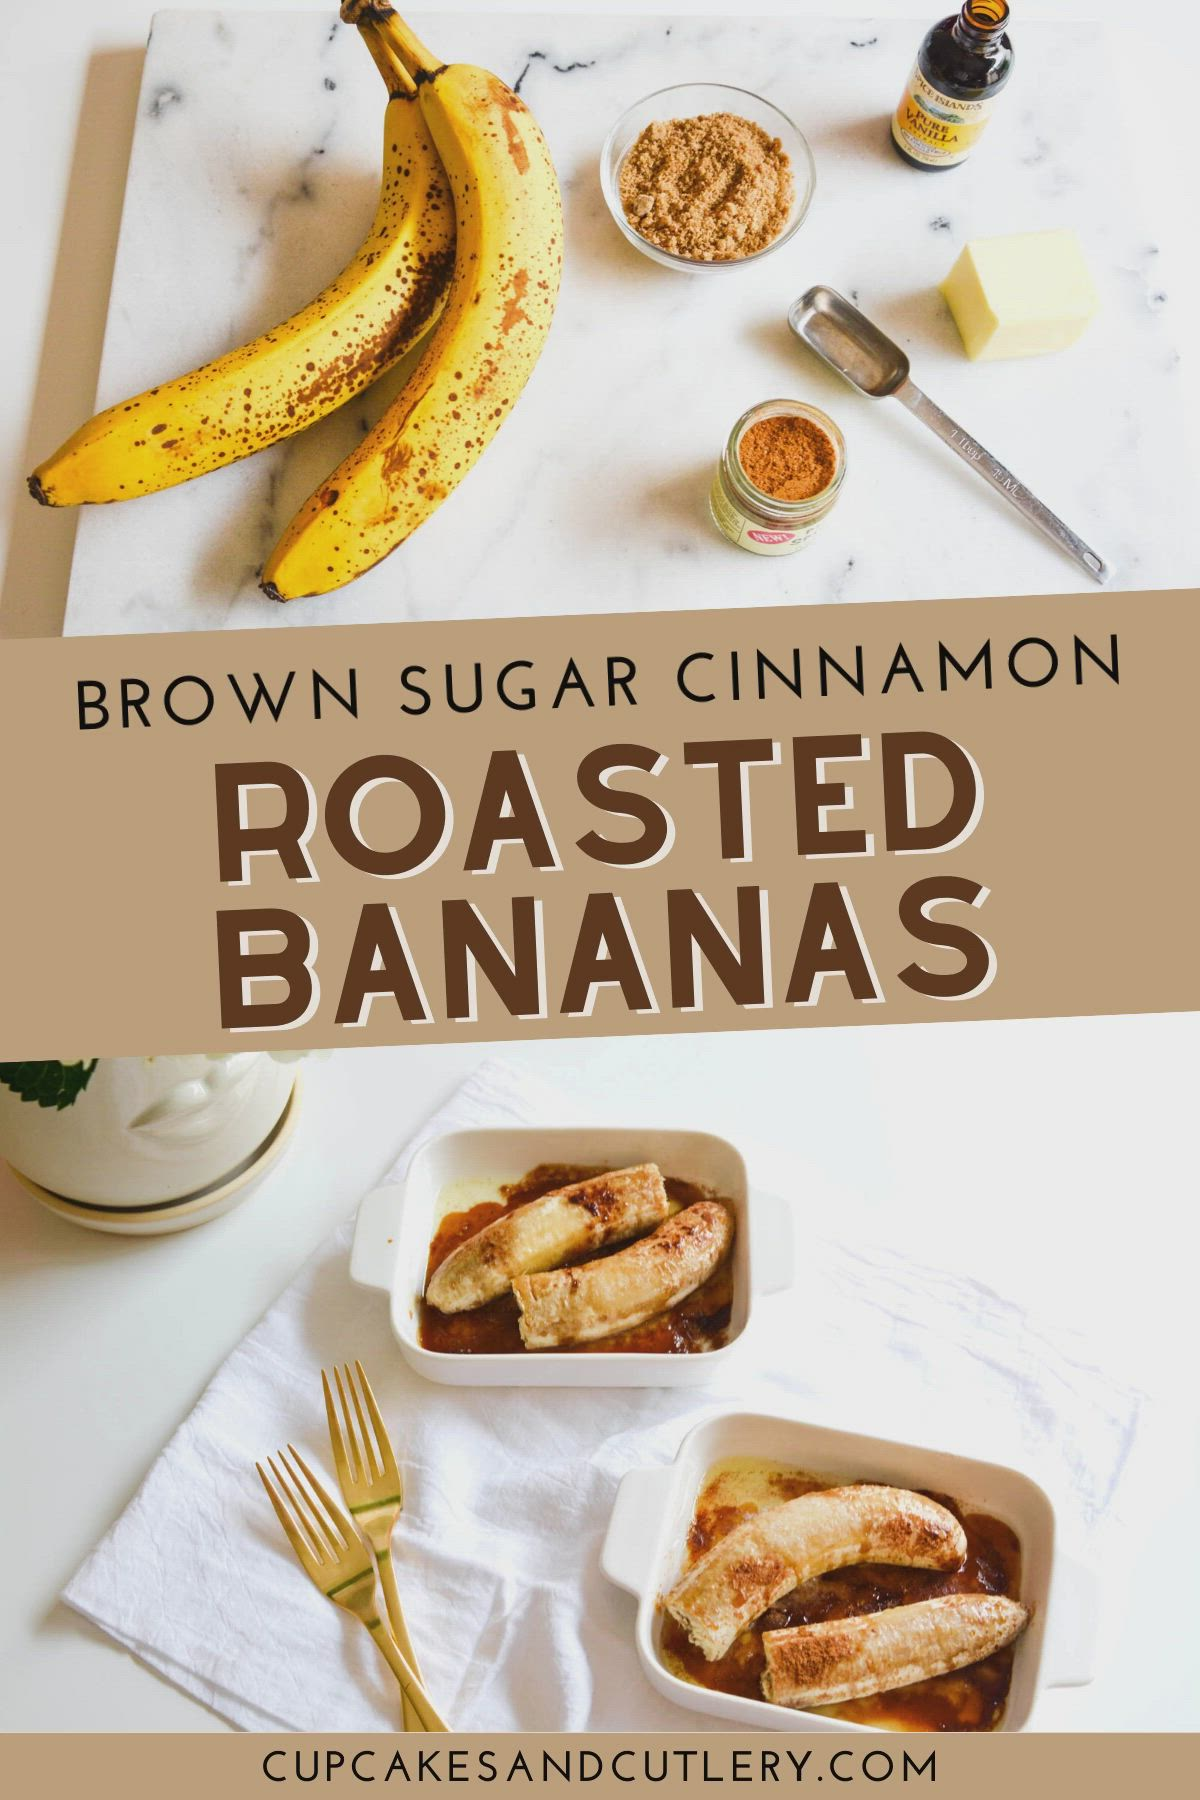 Roasted Bananas With Brown Sugar And Cinnamon Video In 2021 Roasted Banana Snacks Desserts